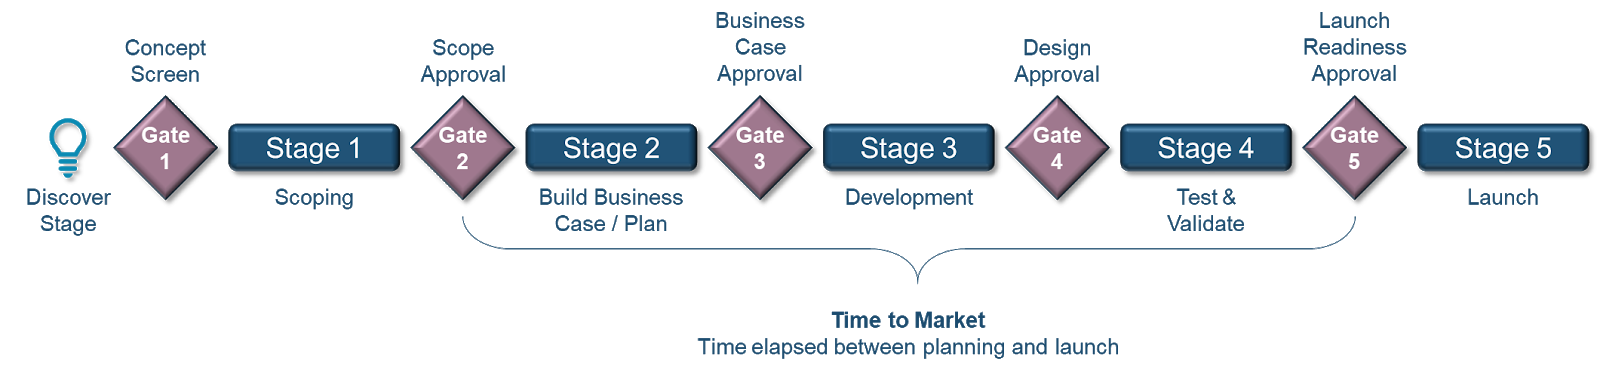 In a typical stage gate product development process, the core team leader controls multiple stages up to the launch.